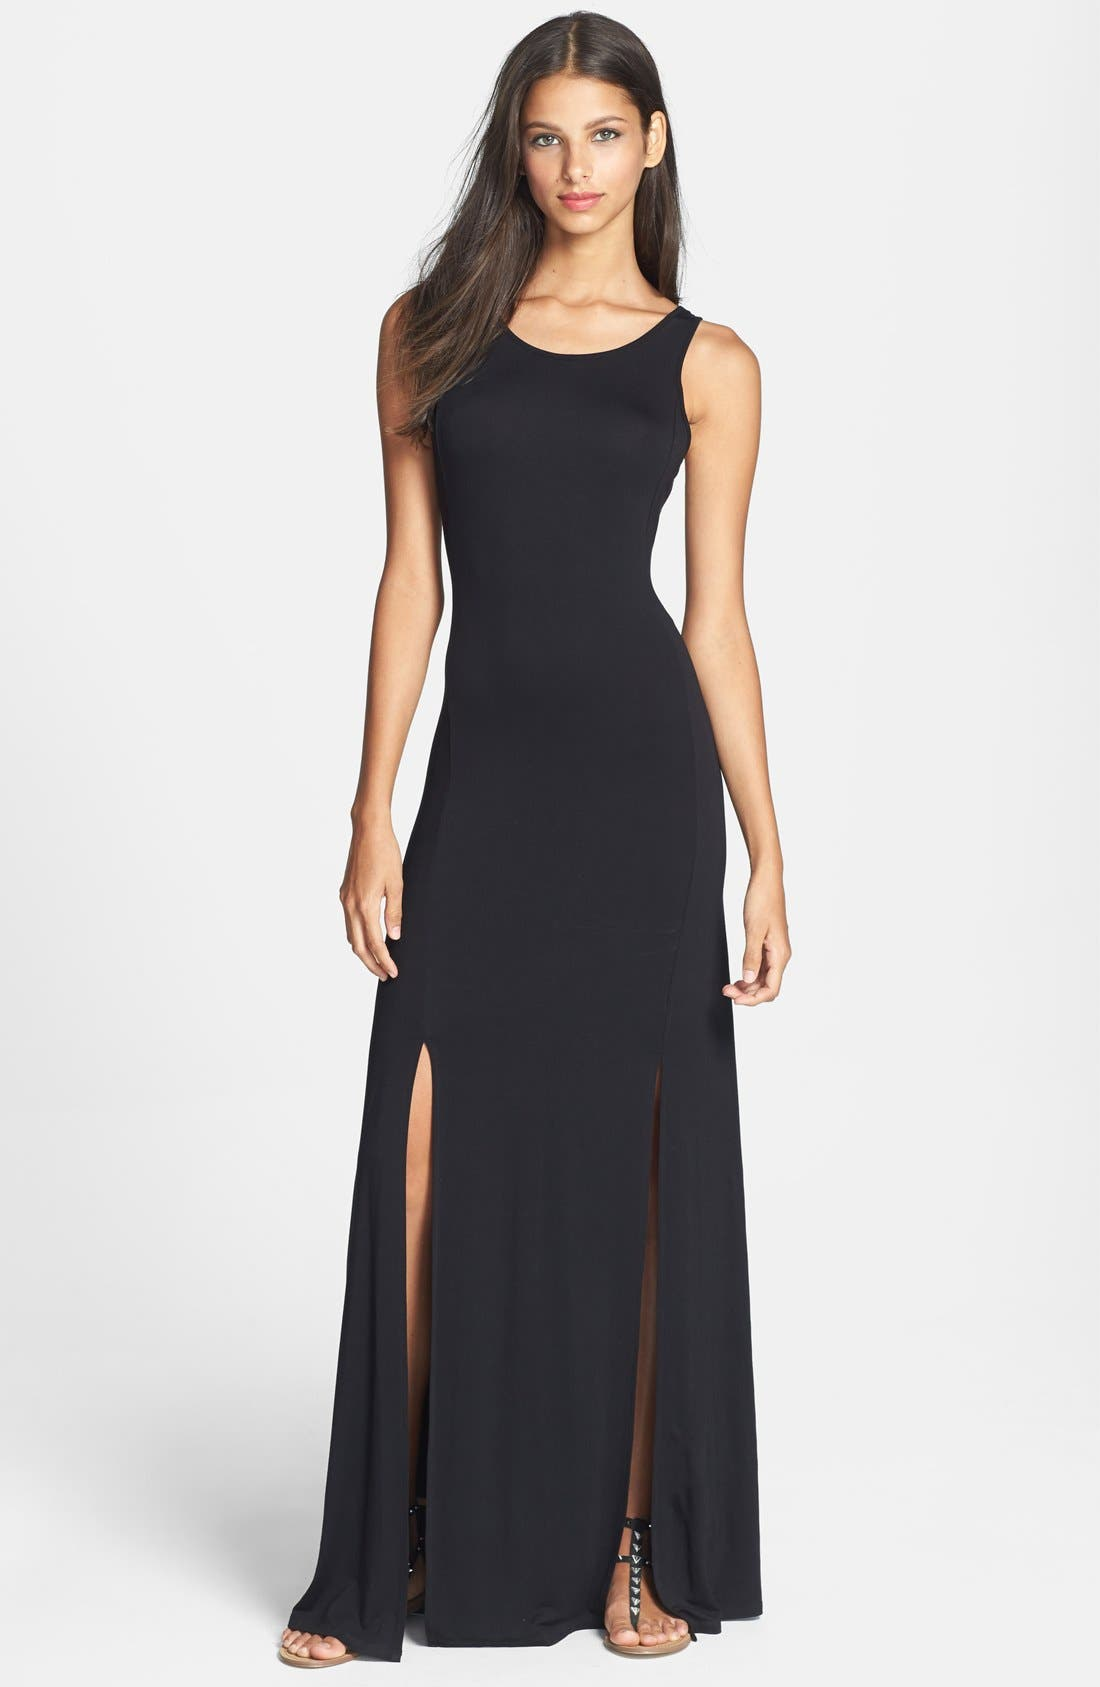 Alternate Image 1 Selected - Felicity & Coco Back Cutout Detail Jersey Maxi Dress (Nordstrom Exclusive)